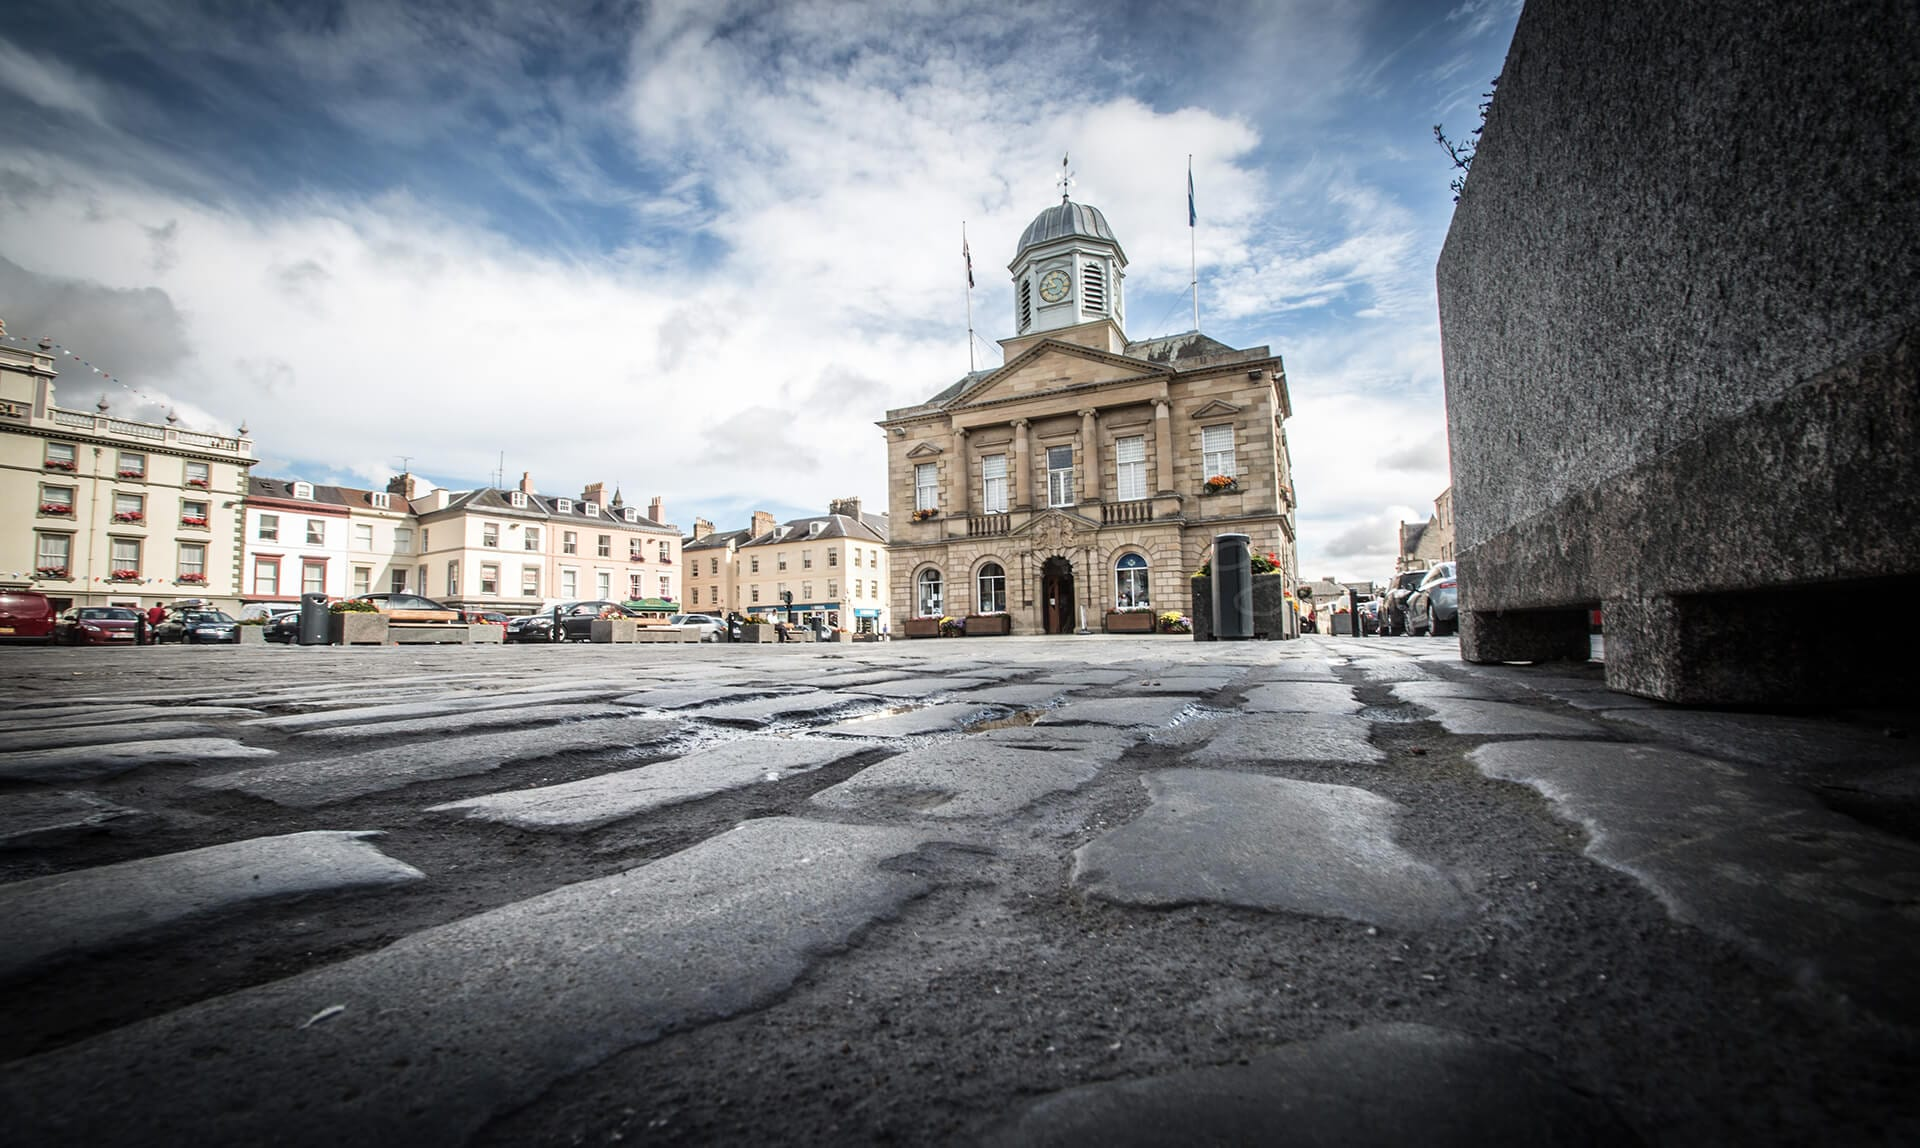 View of Kelso town hall from a very low angle showing cobbles in the foreground